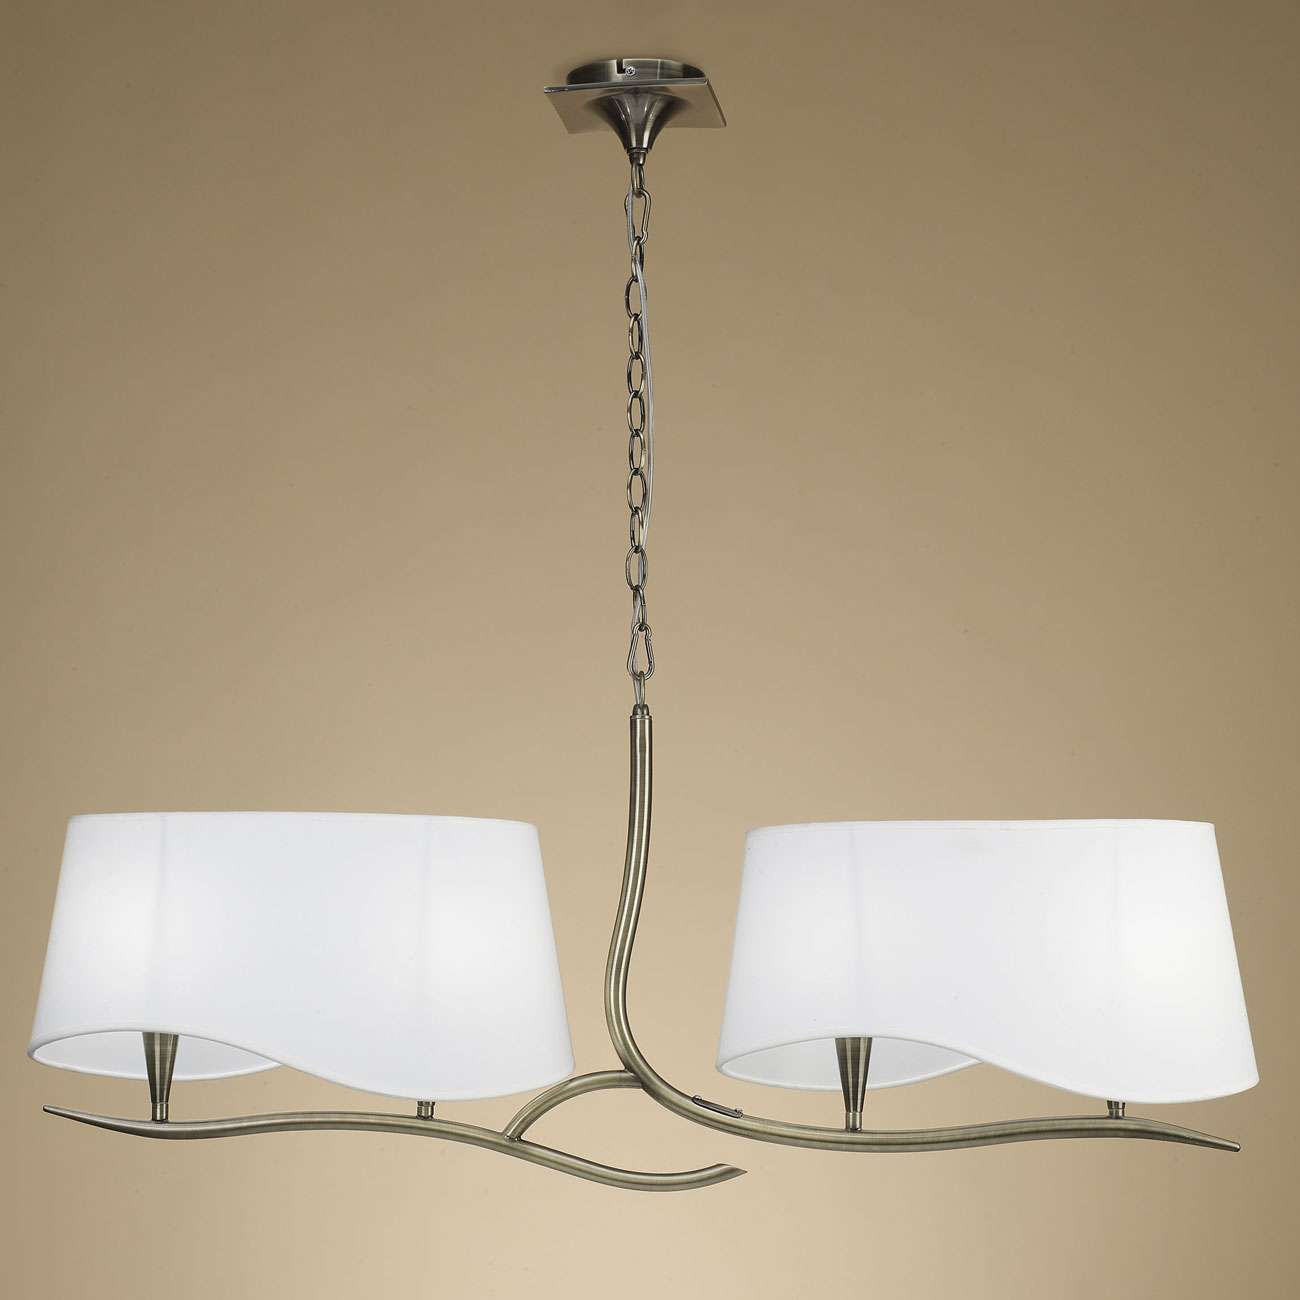 Ninette Lamp linear 4L 4 x 20w E14 leather white lampshade